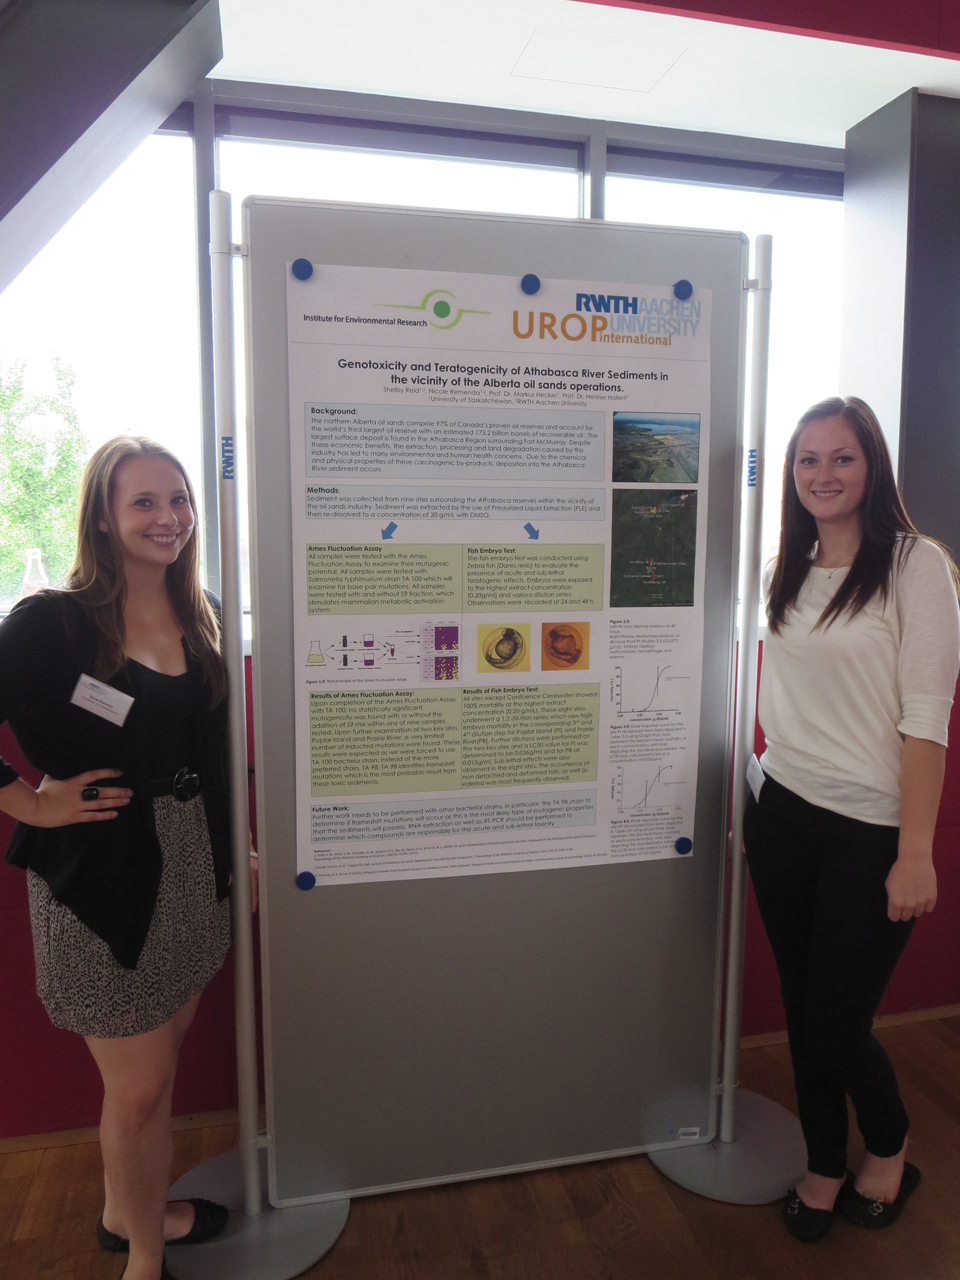 Nicole Remenda and Shelby Reid from the University of Saskatchewan, Canada